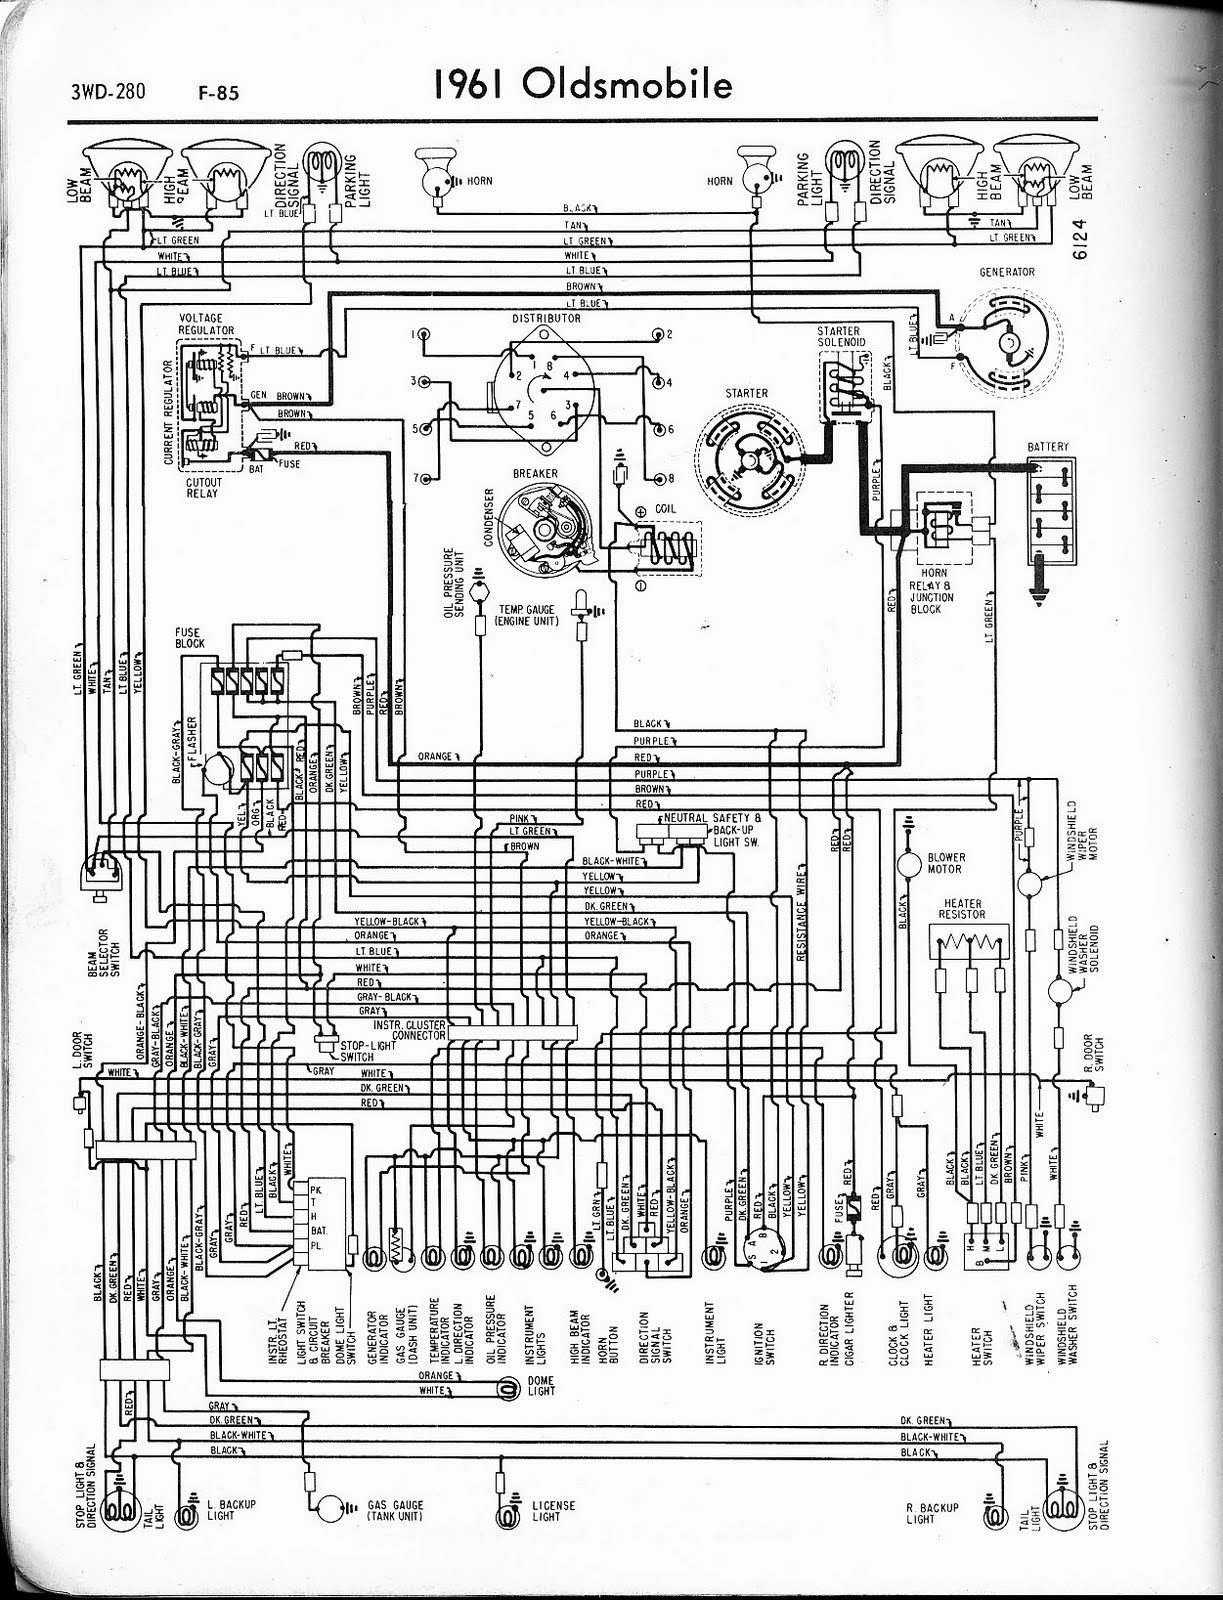 1987 chevy wiring diagram free download 1987 chevrolet engine diagram free download free auto wiring diagram 1981 1987 chevrolet v8 truck #3